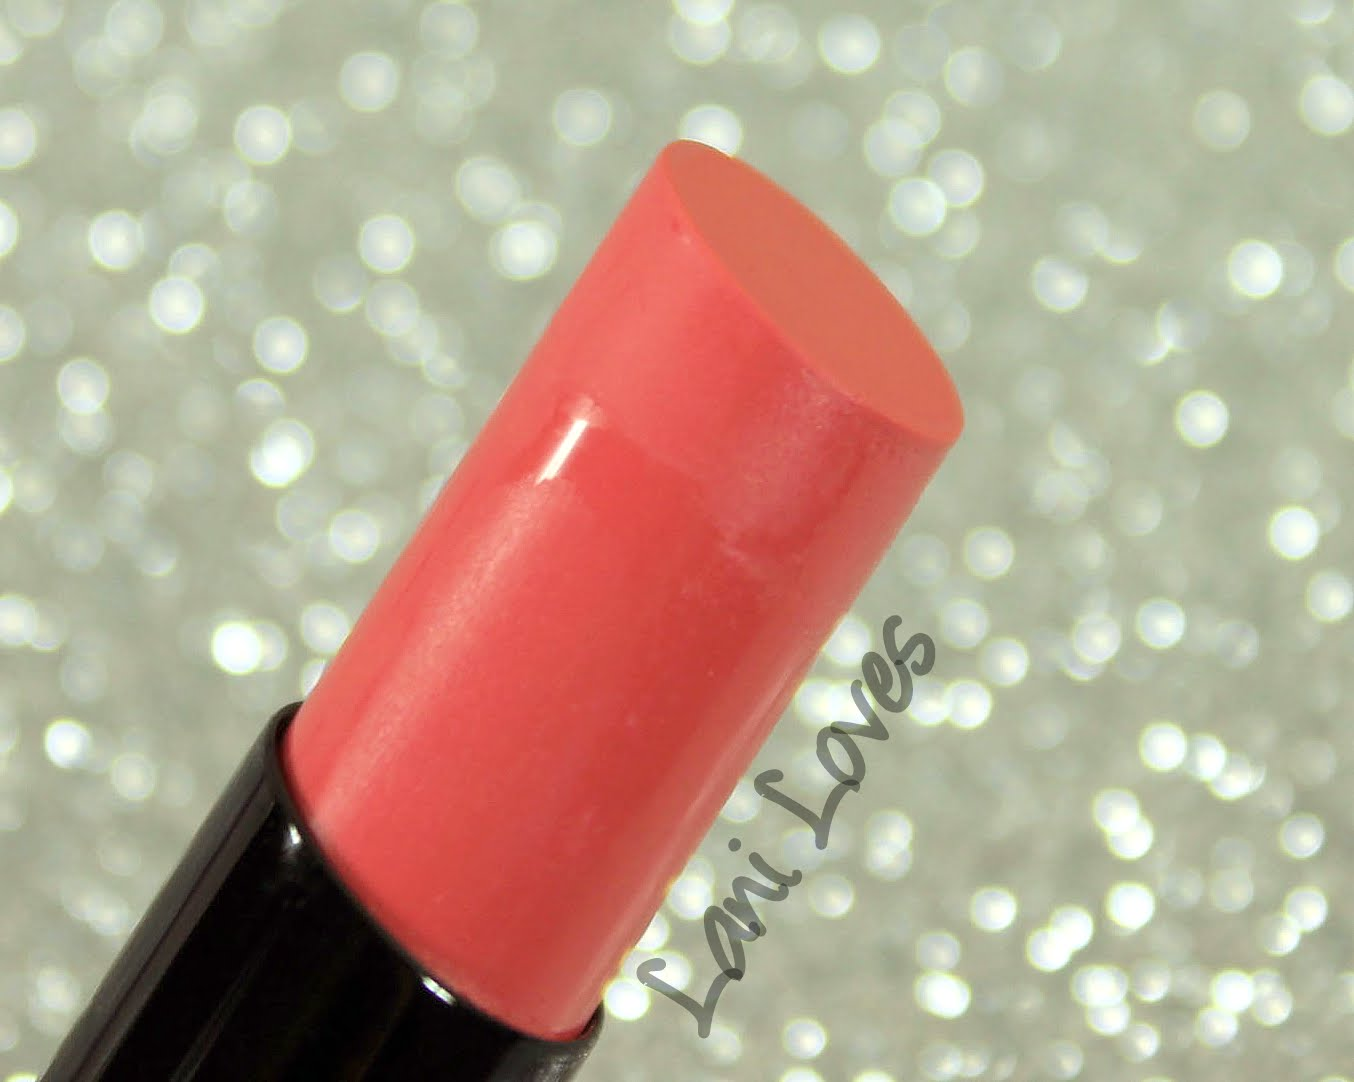 ZA Vibrant Moist Lipstick - PK381s swatches & review